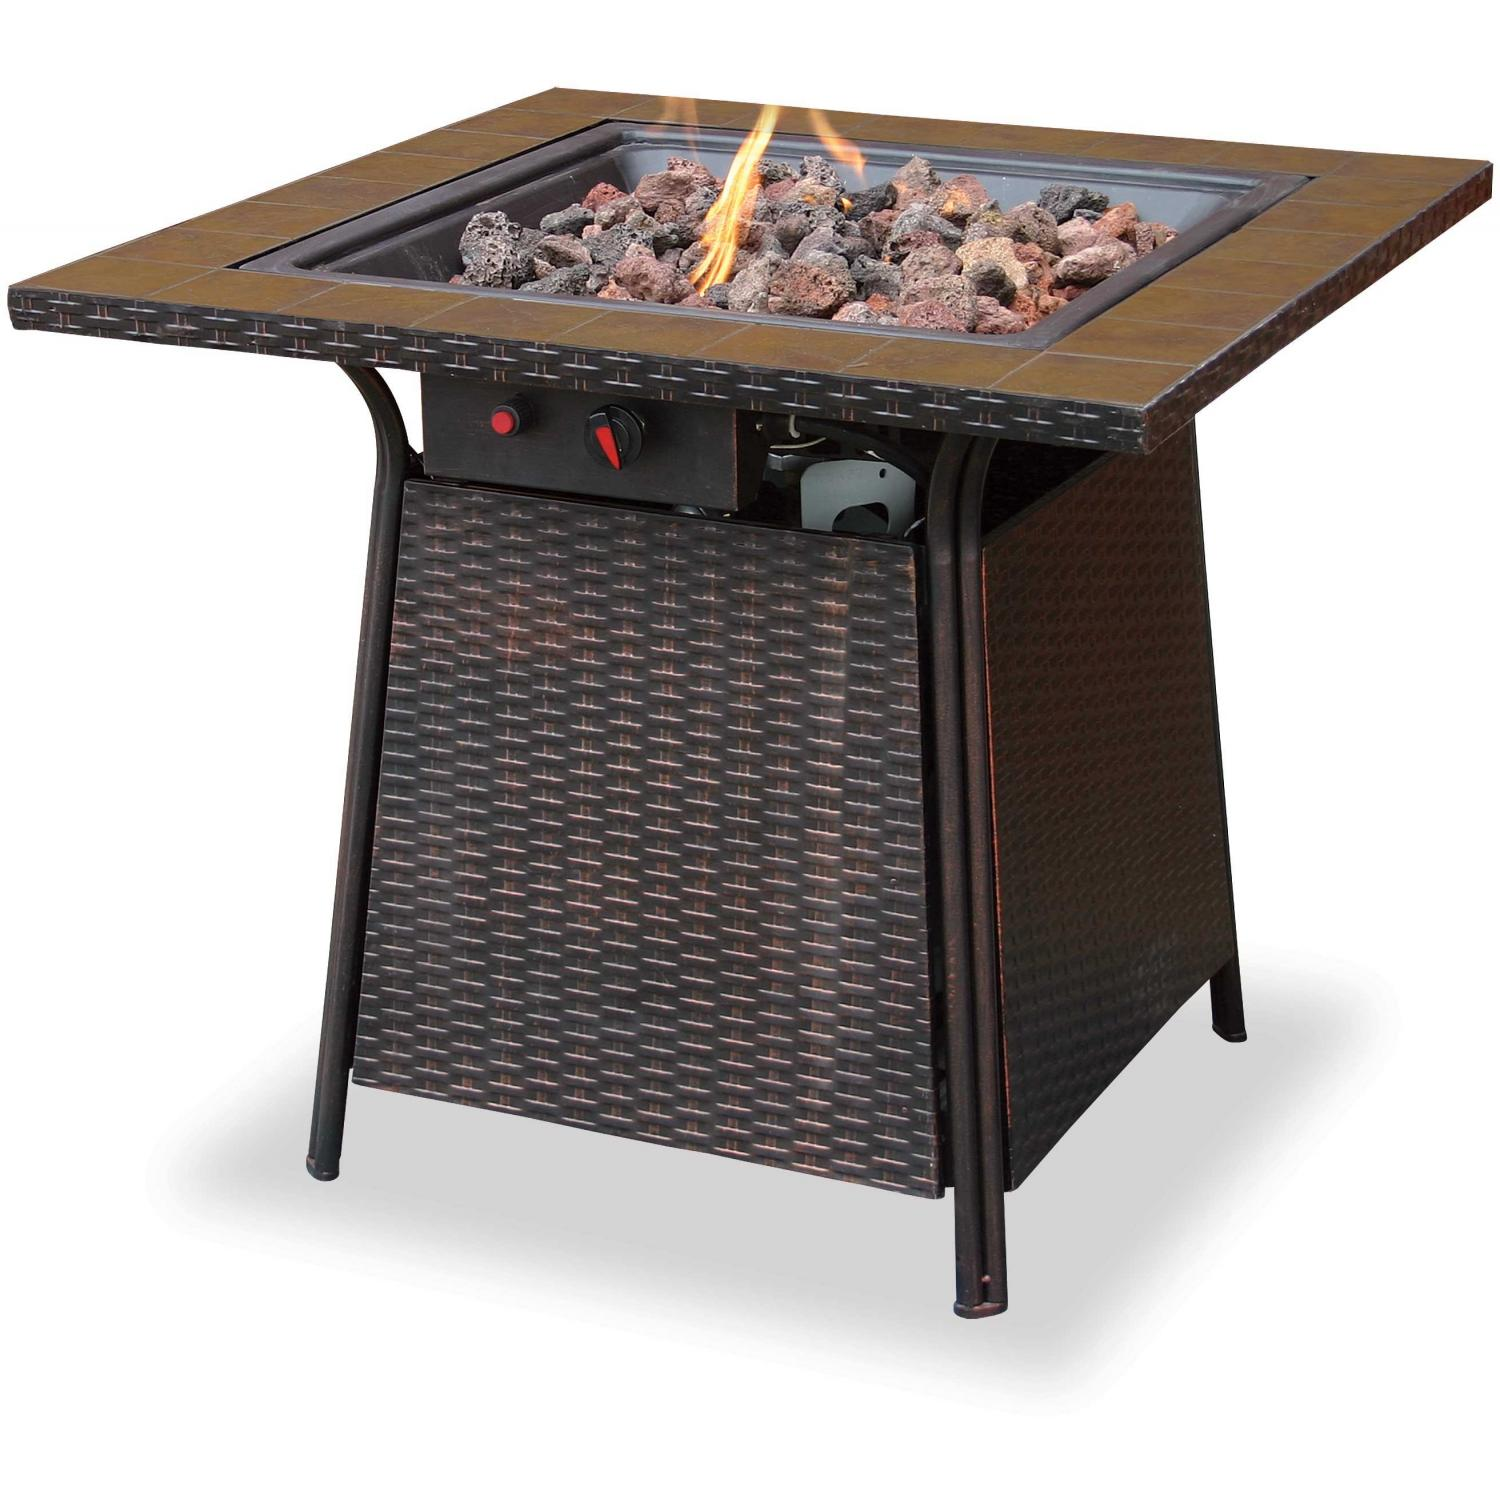 UniFlame 32 Inch Propane Fire Pit With Electronic Ignition